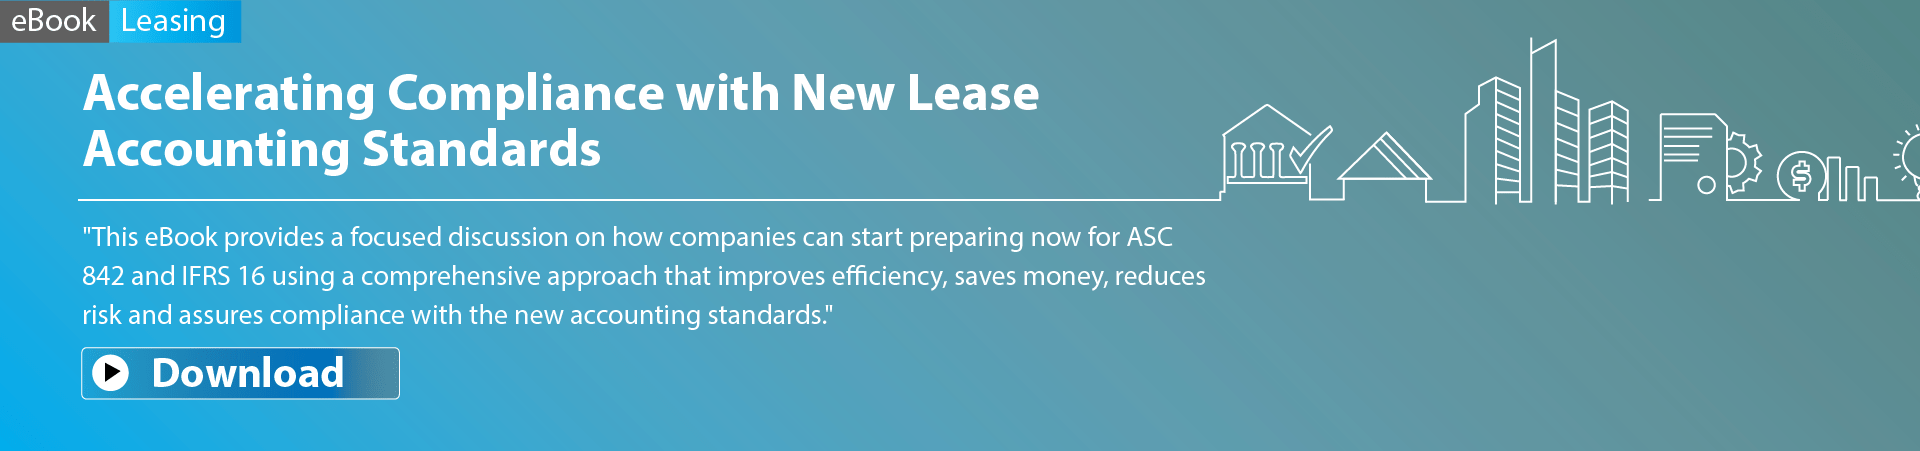 Accelerating Compliance with New Lease Accounting Standards